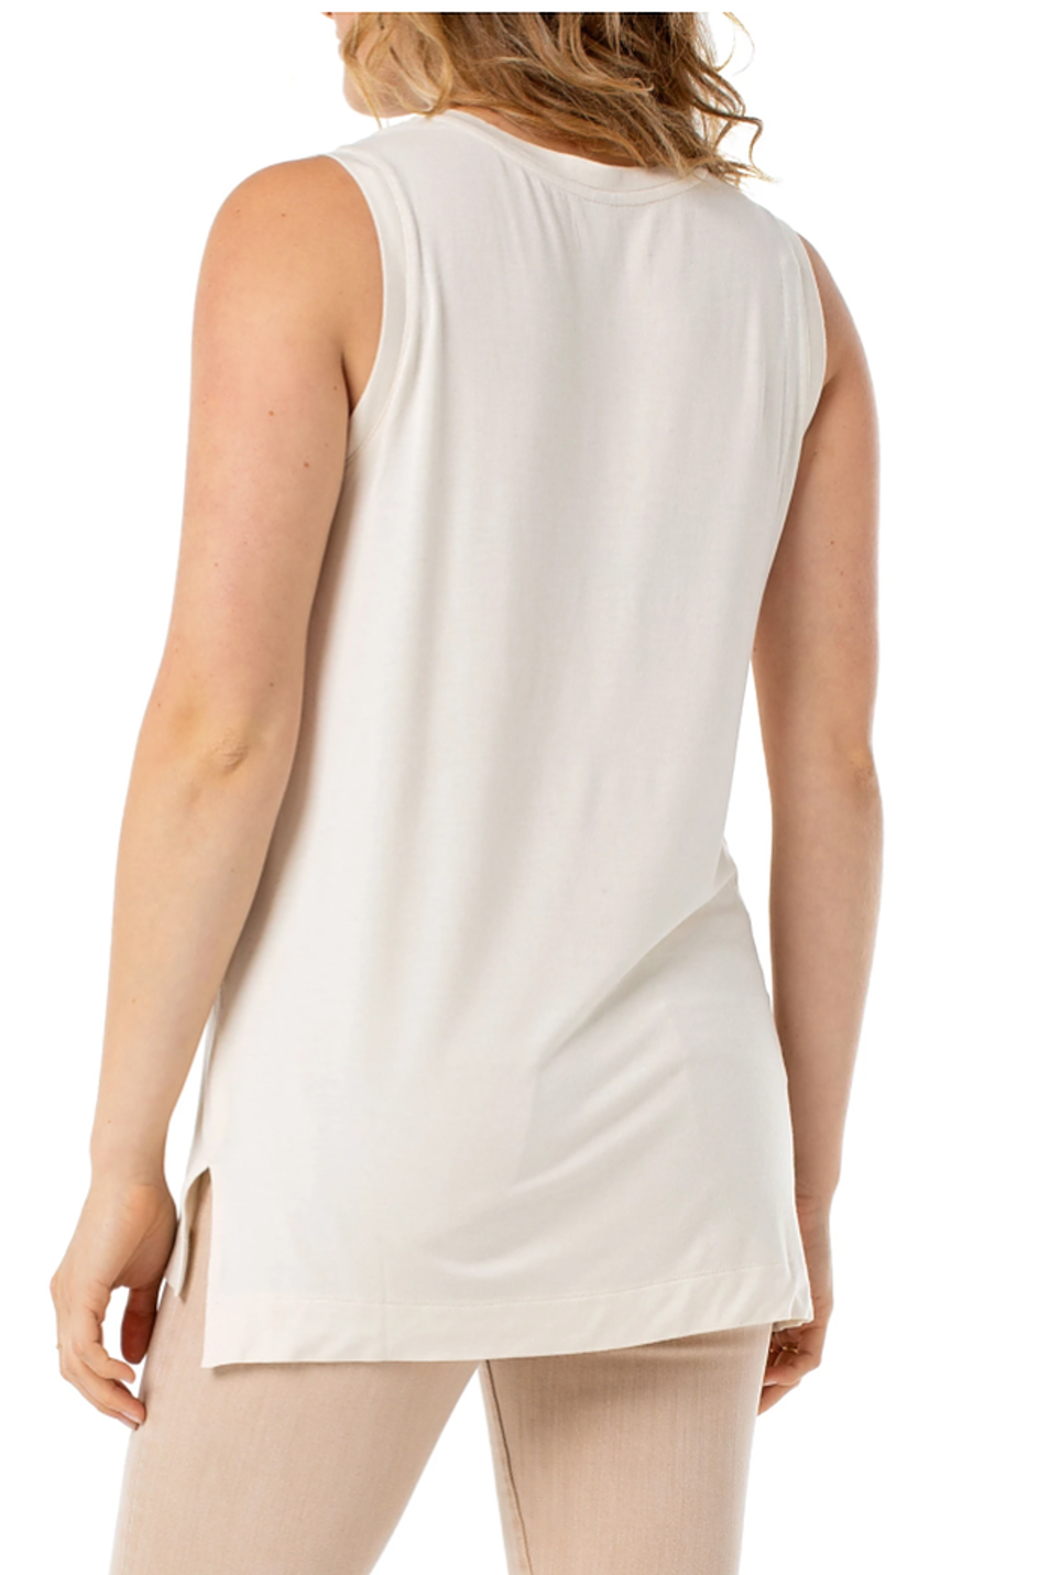 Liverpool  Sleeveless Scoop Neck Knit Tank - Front Full Image